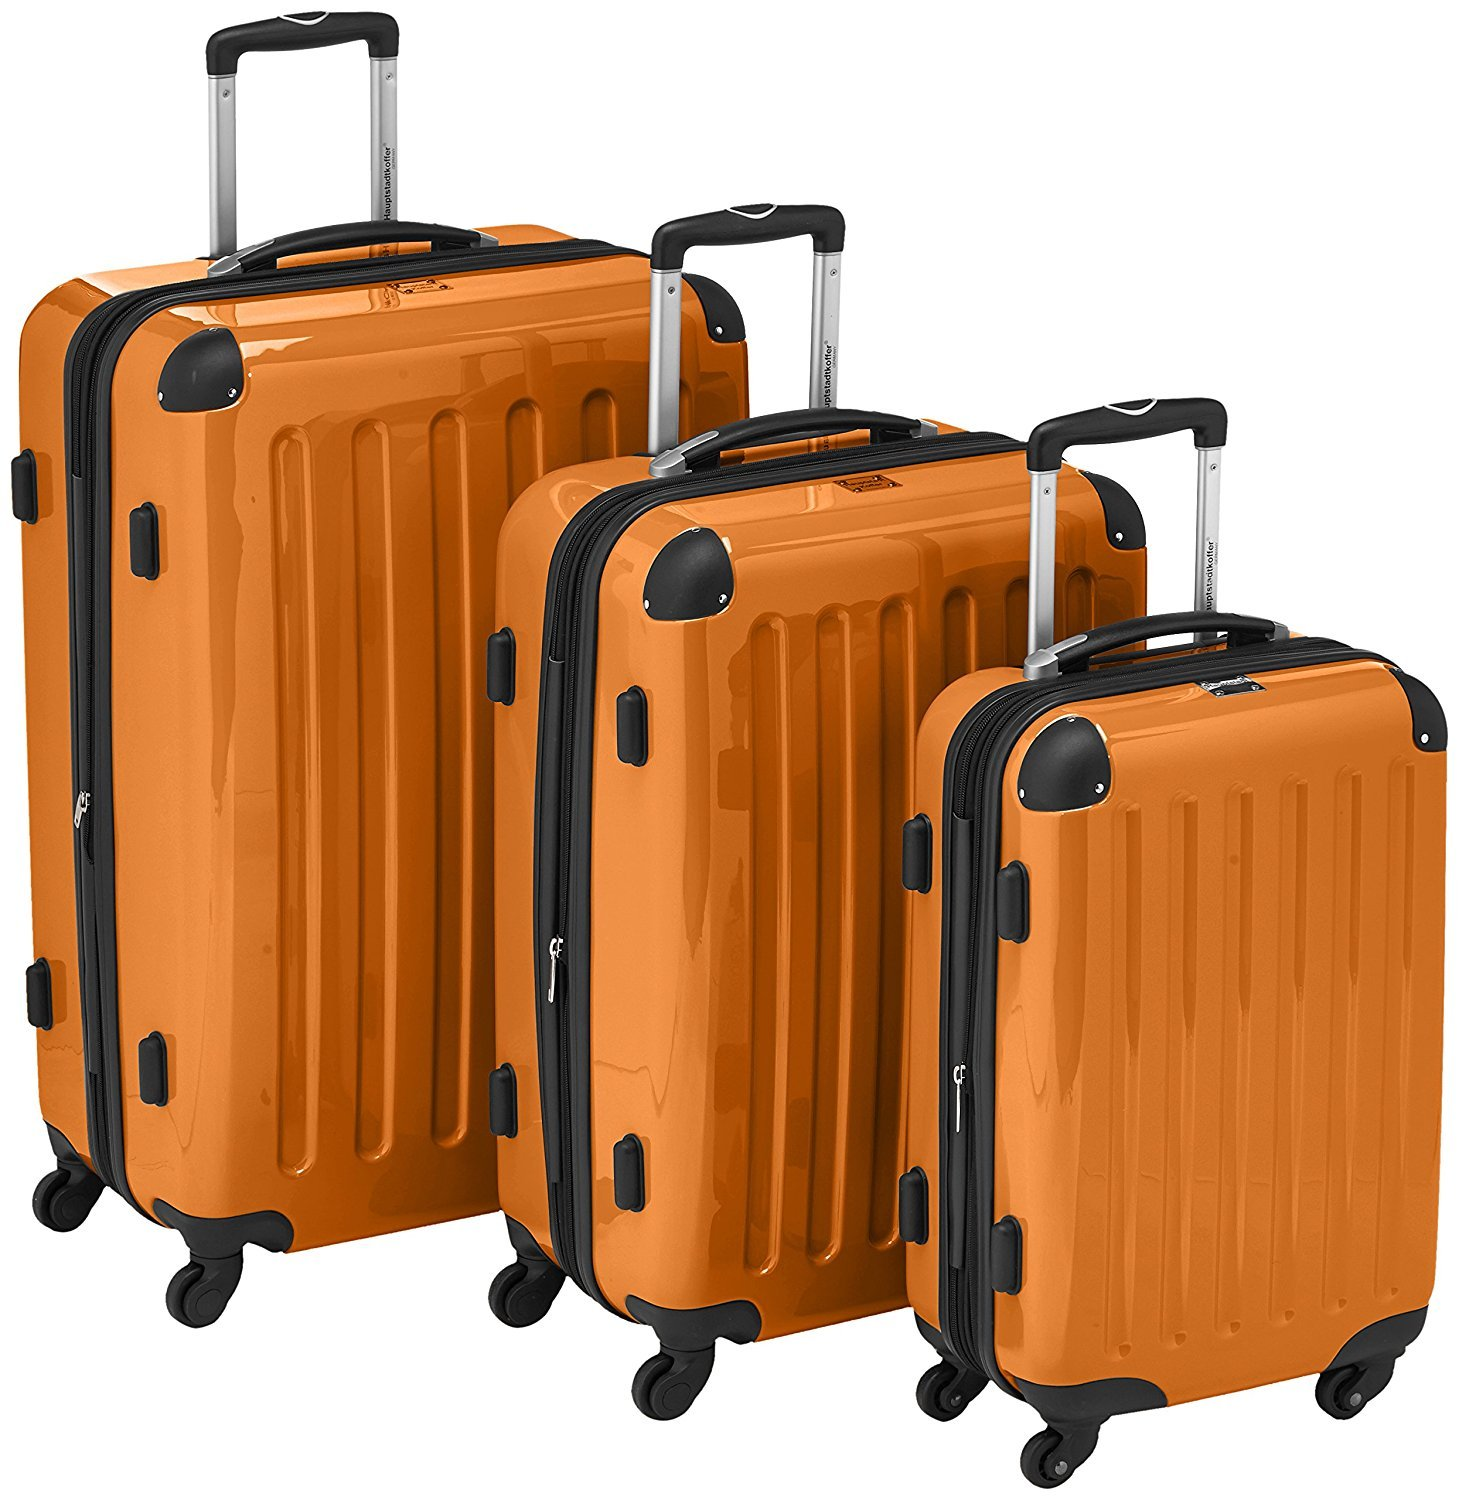 Hard side suitcase set